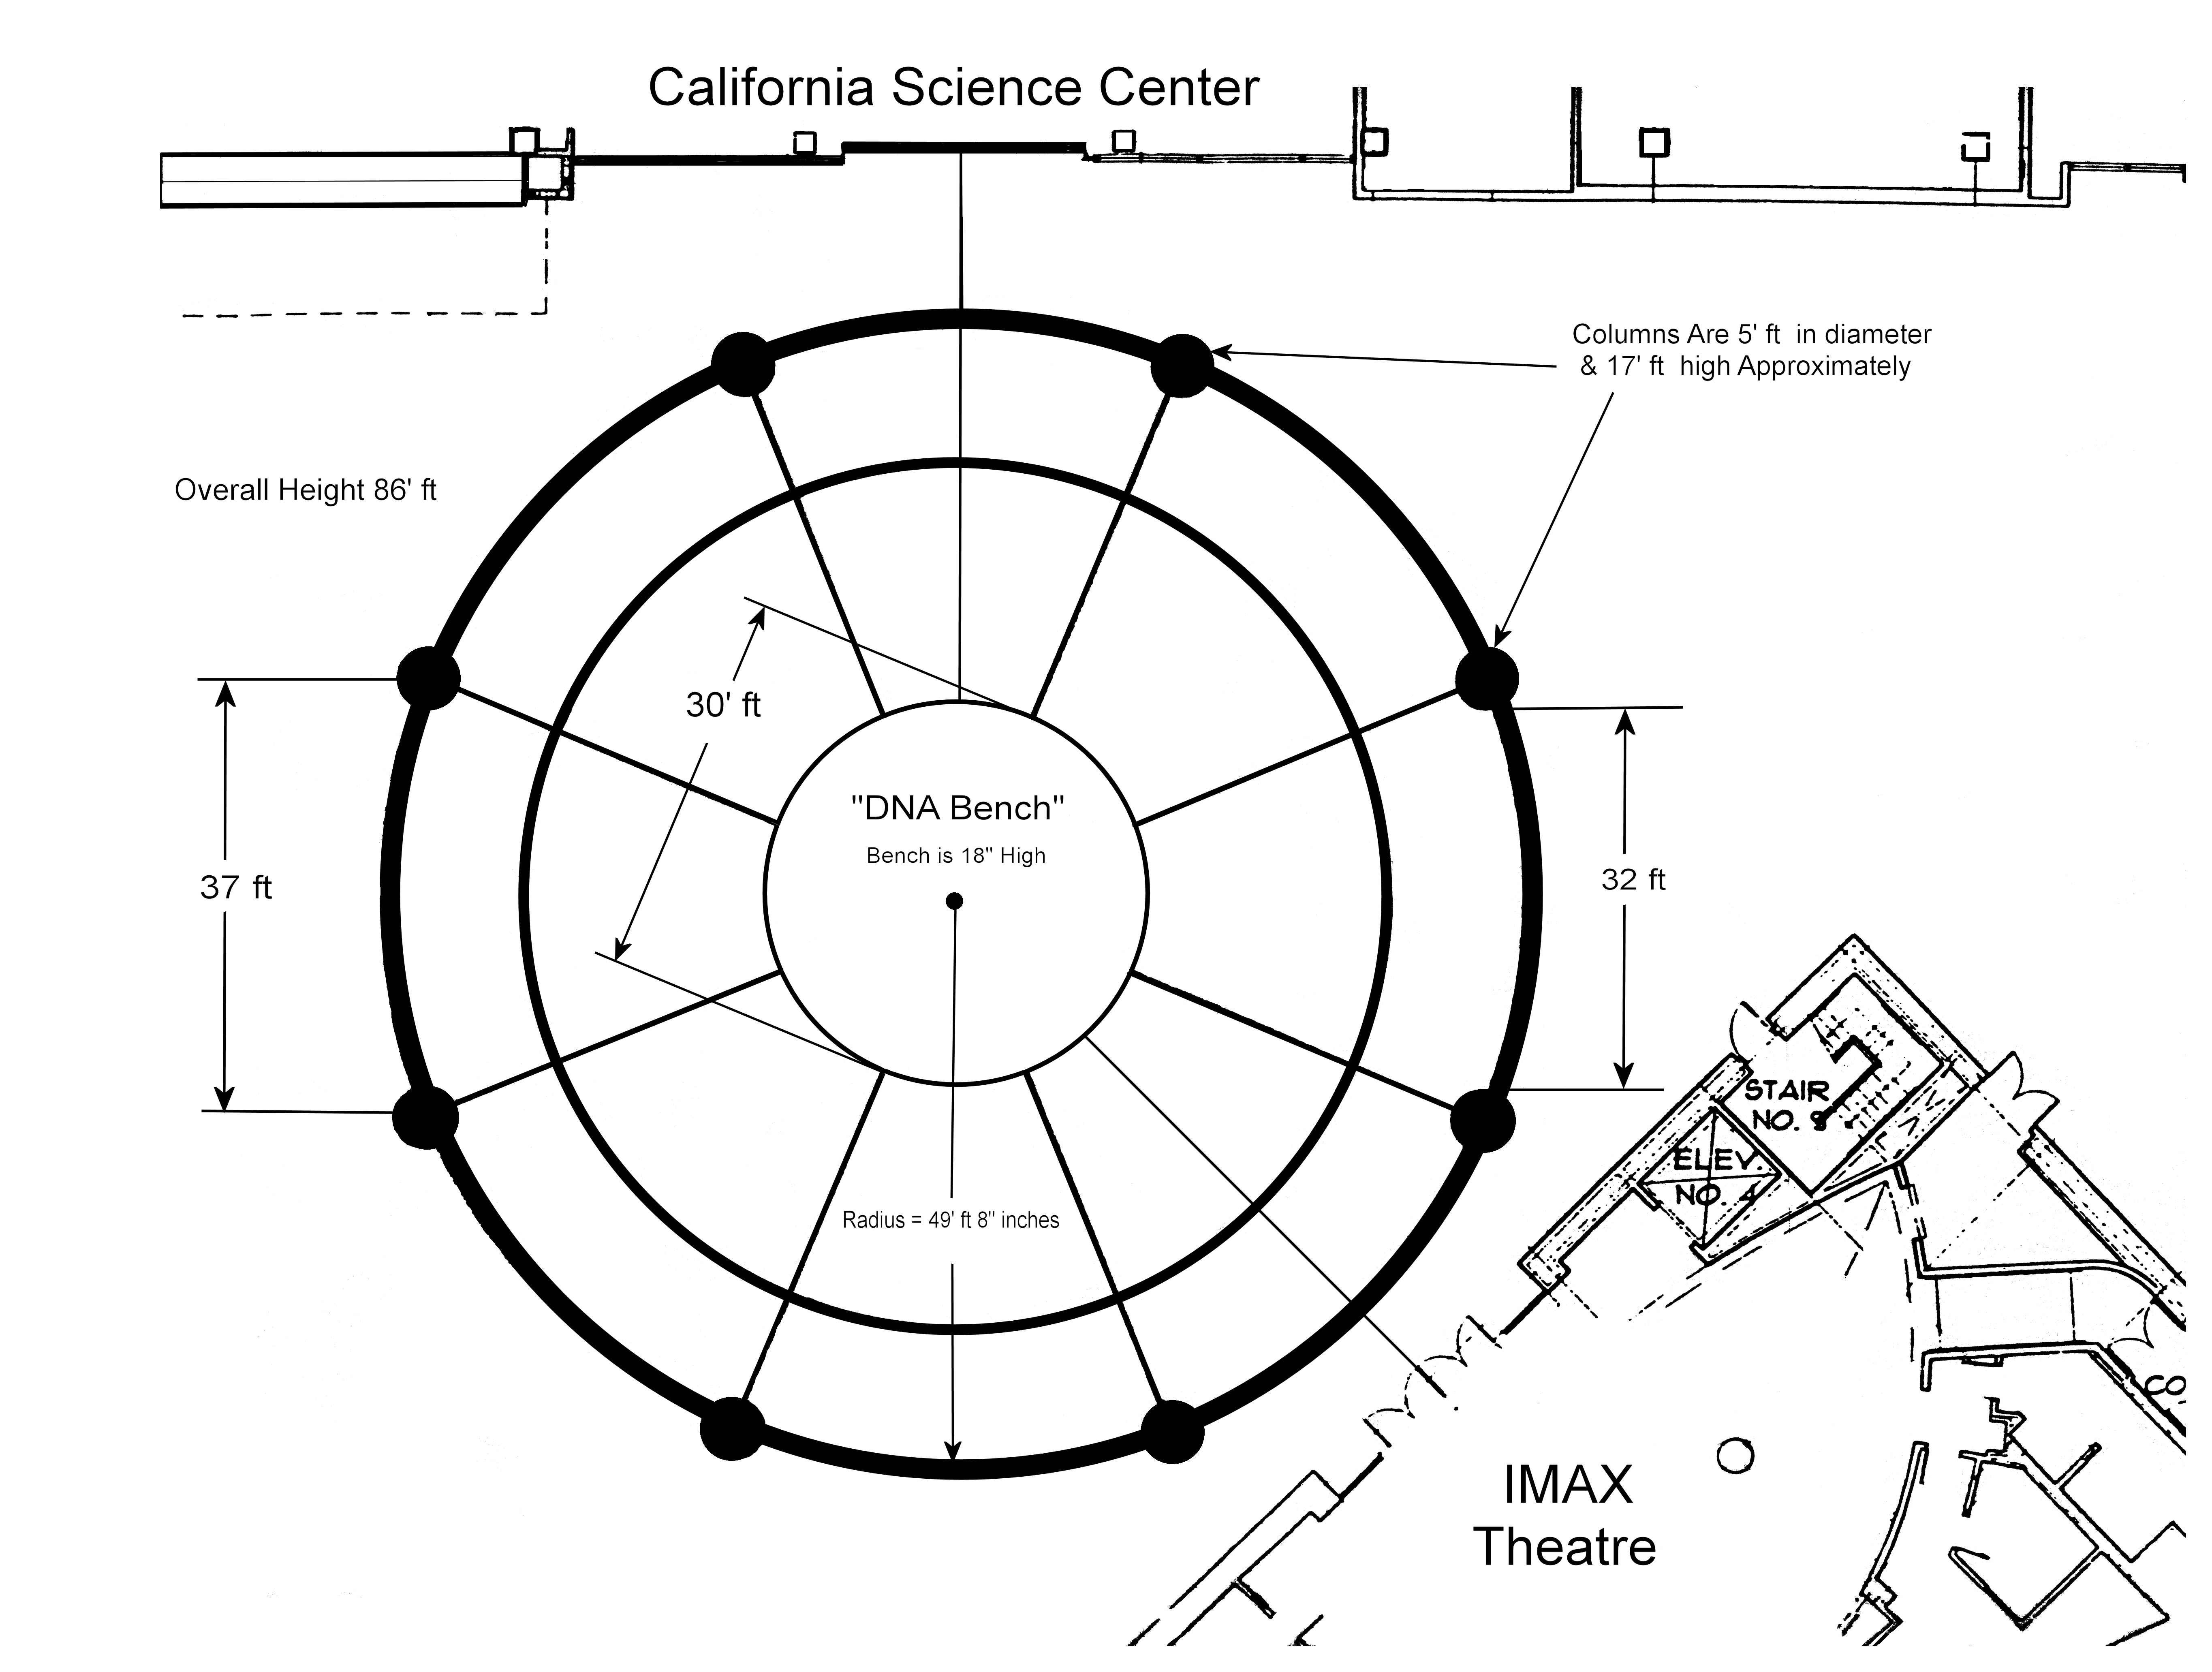 Blank venue diagram of the Lorsch Family Pavilion including DNA bench, IMAX Theatre, and California Science Center labels as well as measurements